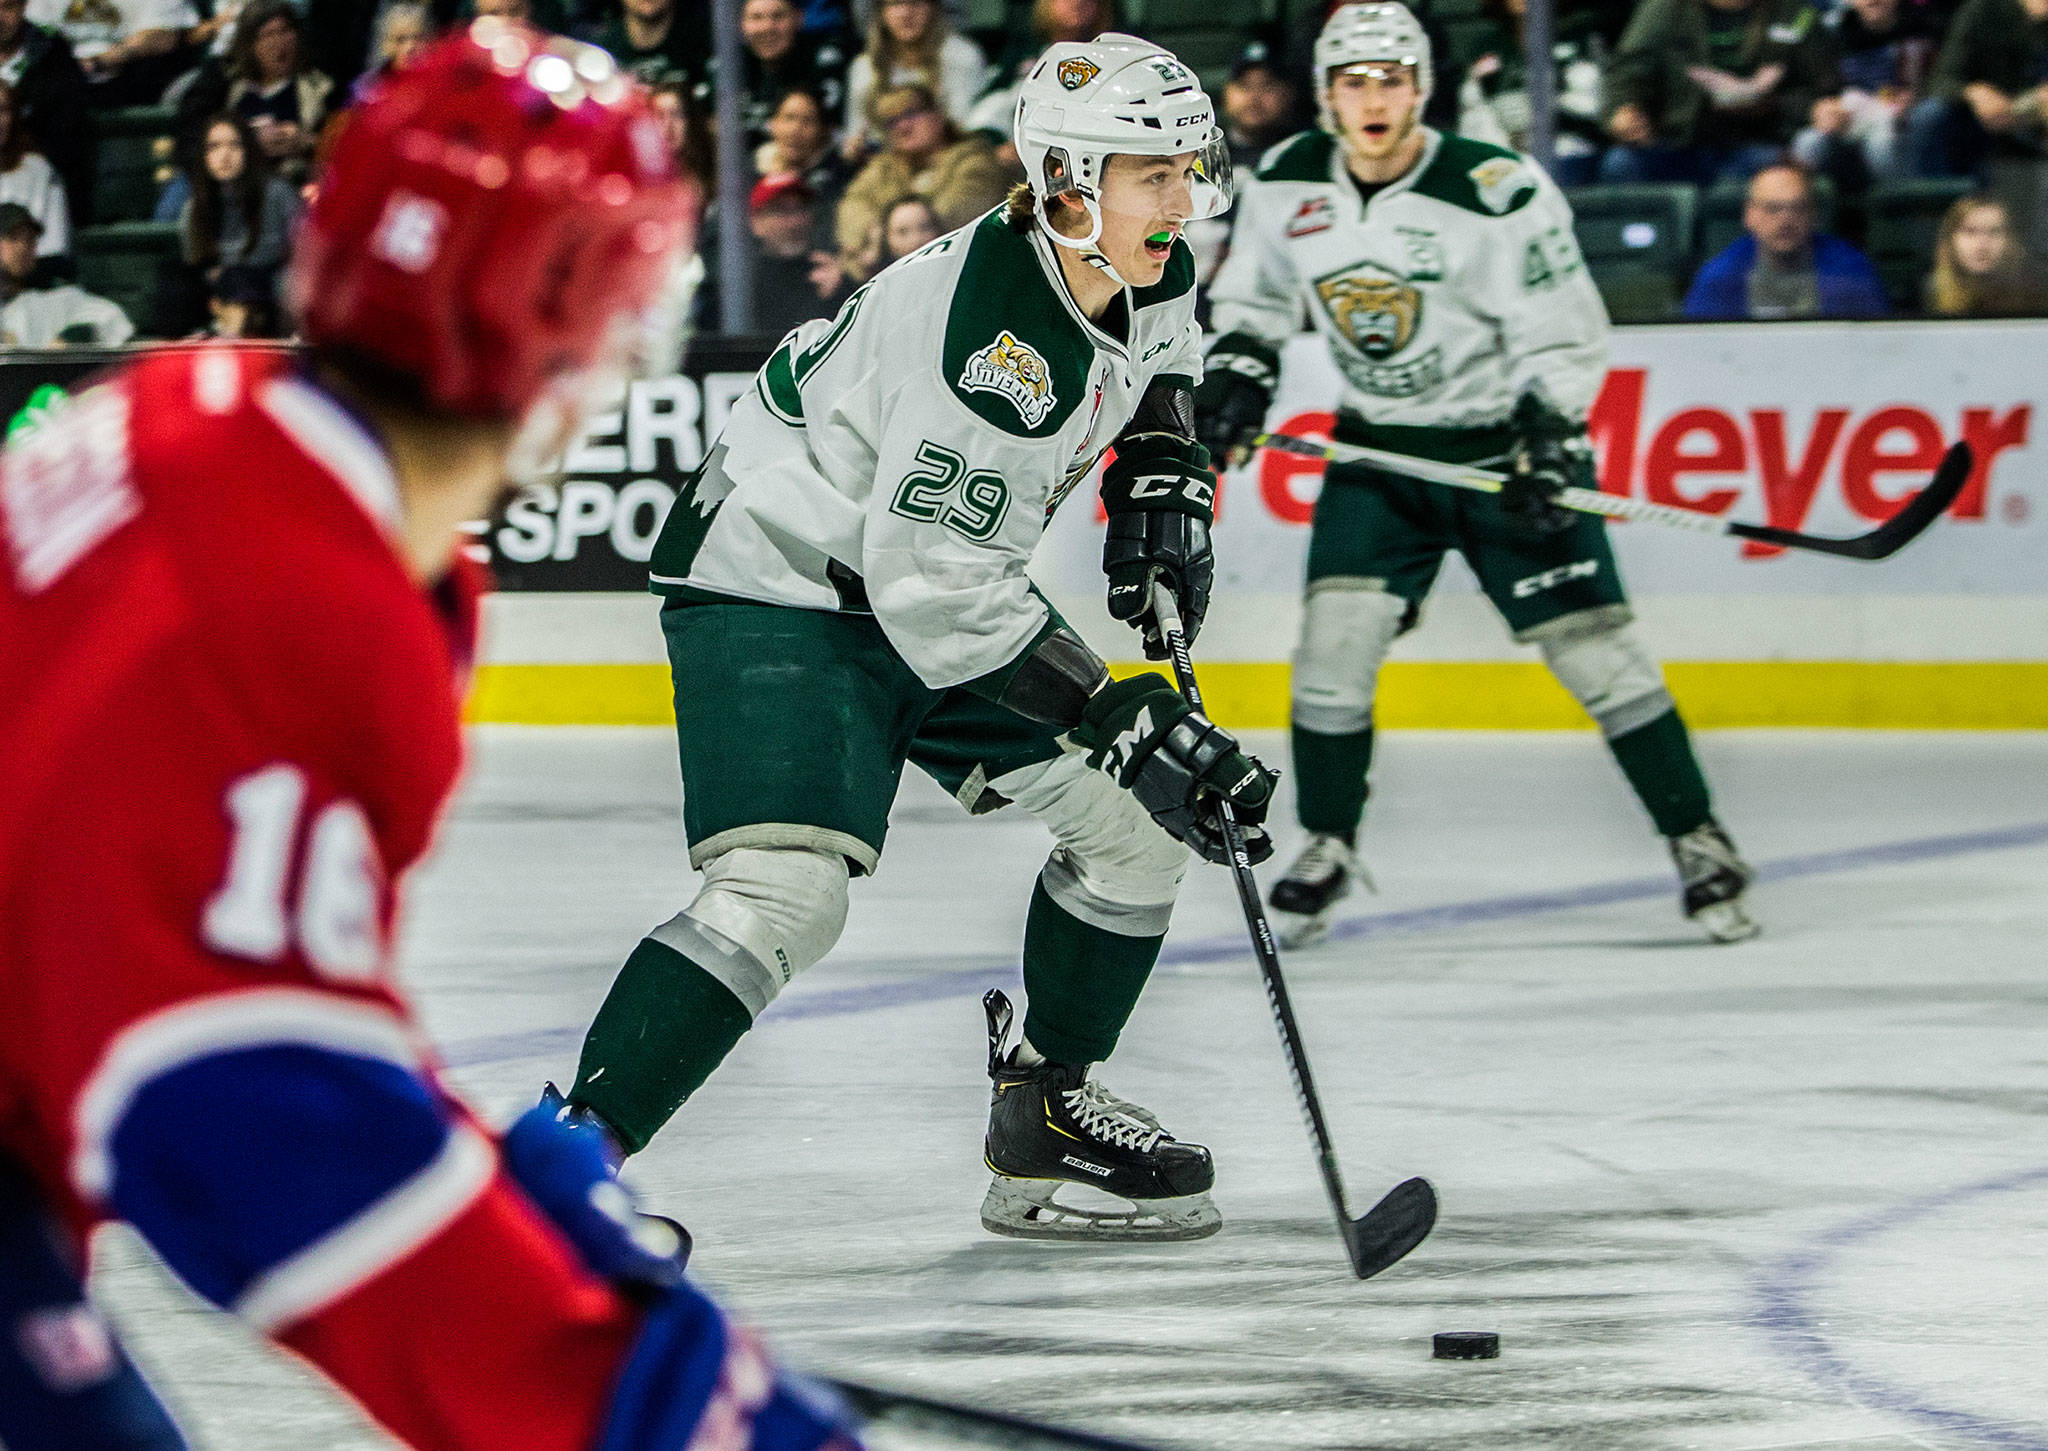 The Silvertips' Wyatte Wylie (29) skates with the puck during a game against the Chiefs on April 7, 2019 in Everett. (Olivia Vanni / The Herald)